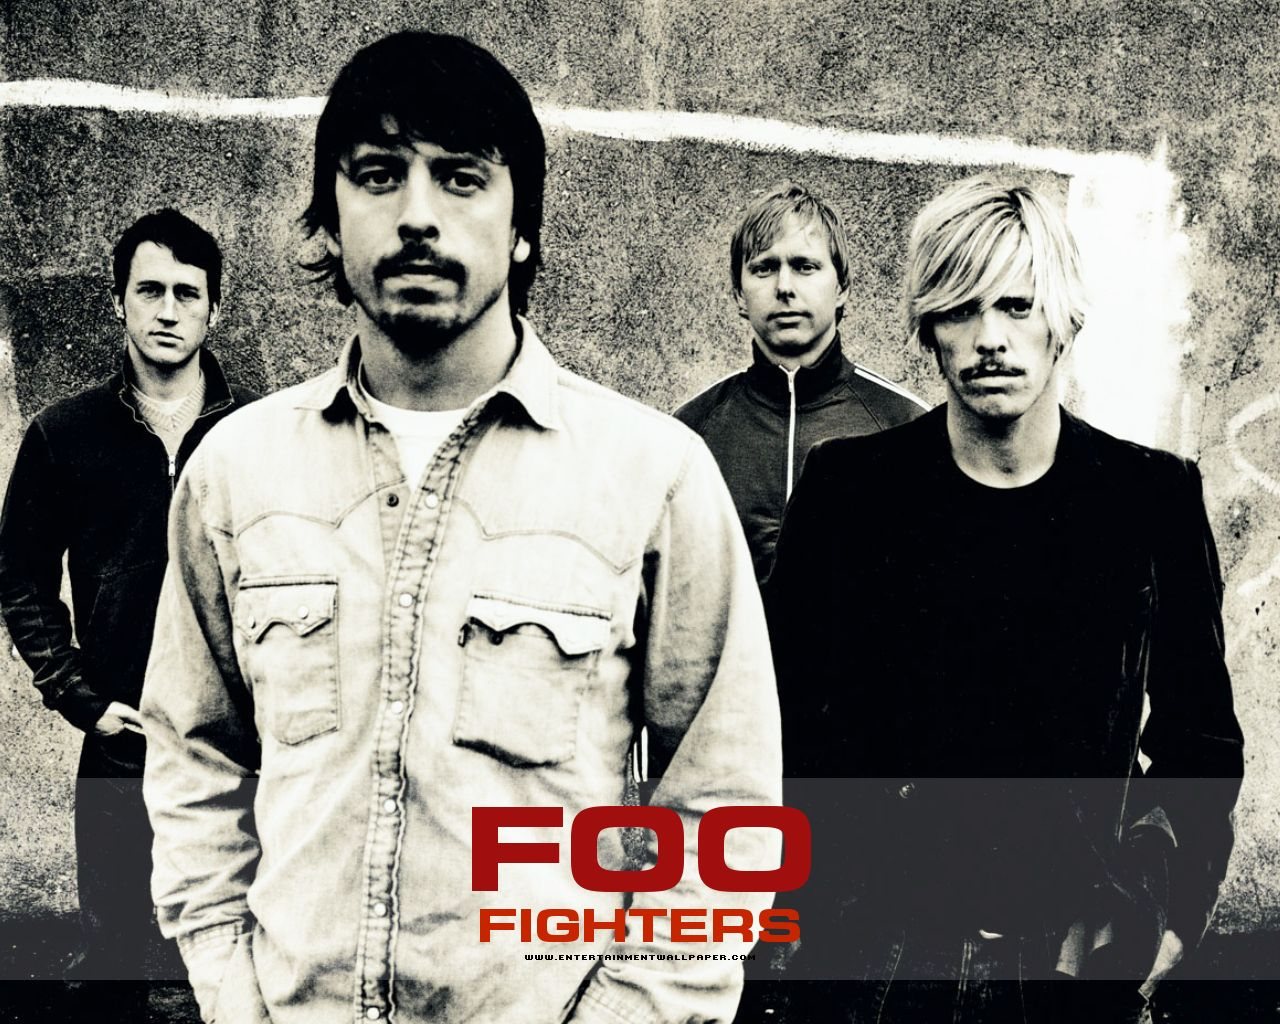 Foo Fighters images Foo Fighters wallpaper photos 649389 1280x1024